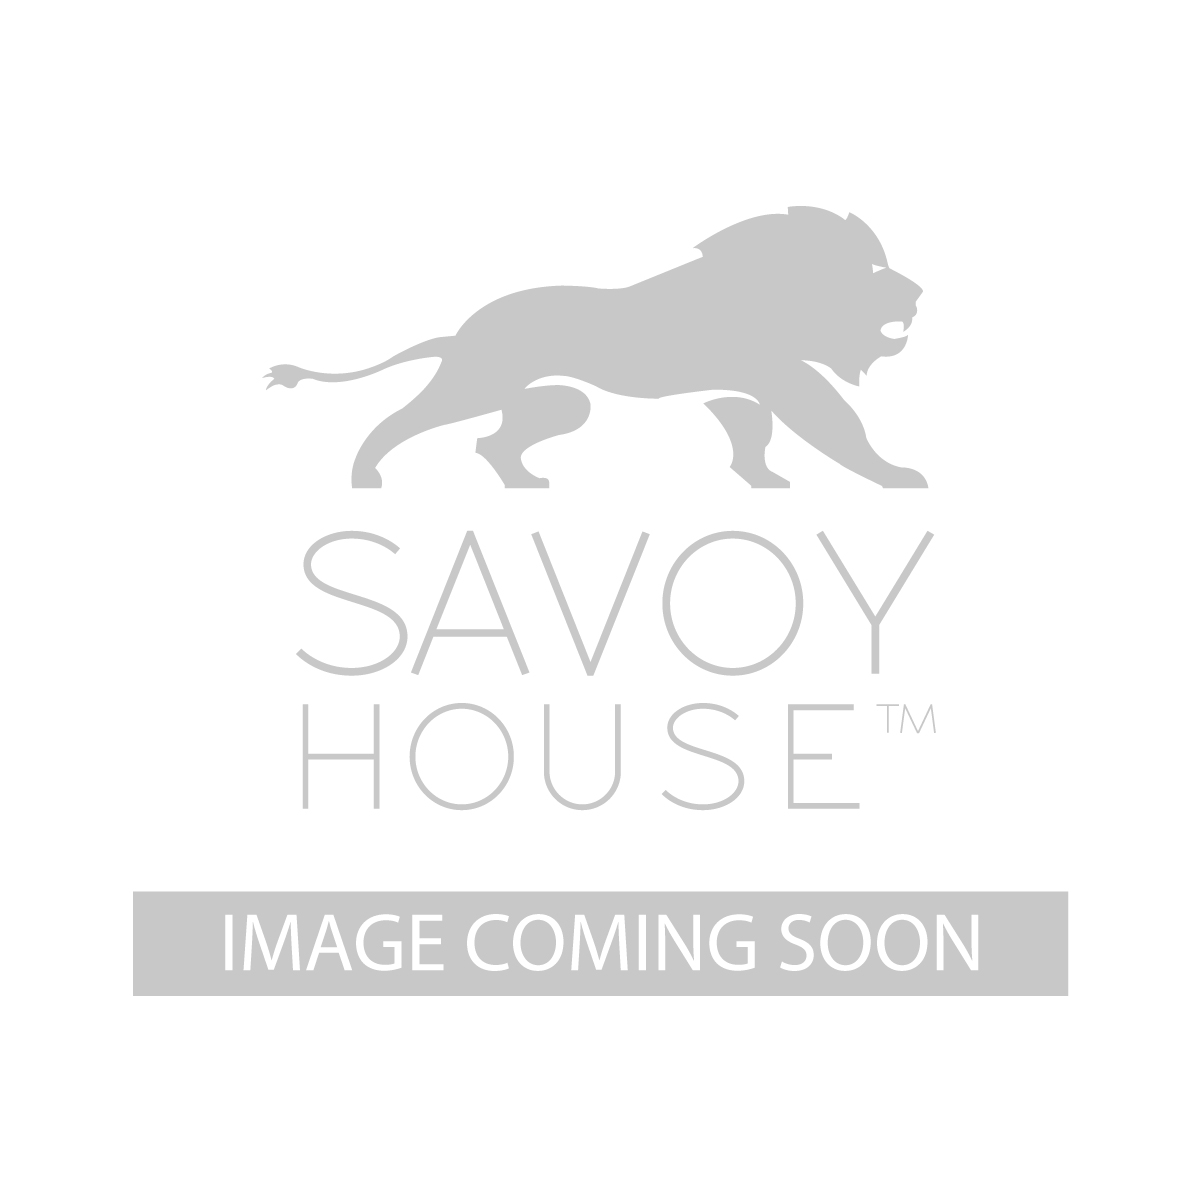 1 4700 5 11 bangle 5 light island chandelier by savoy house for Savoy house com